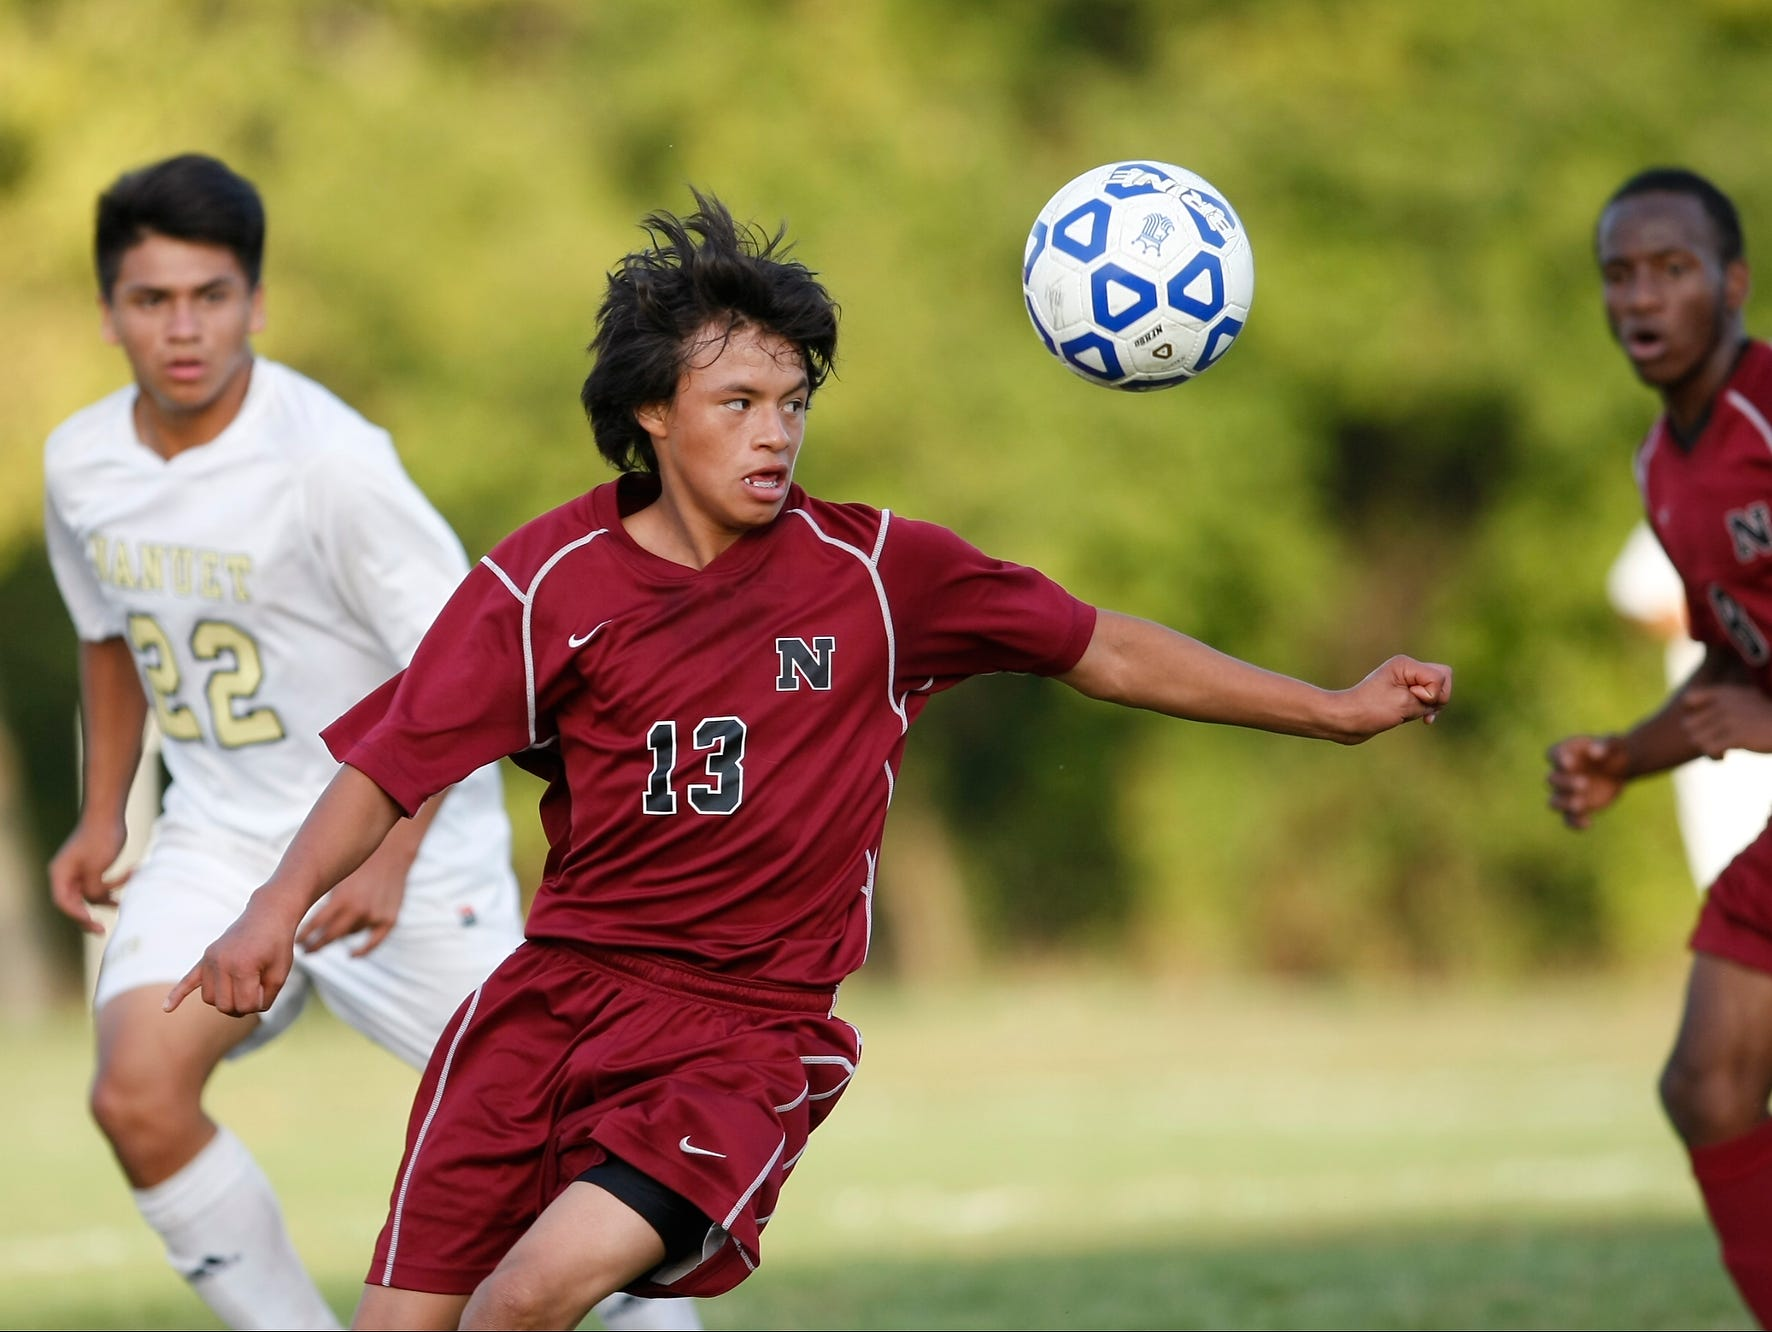 Nyack's Jose Gagliardi (13) controls the ball during a boys soccer game against Nanuet at Nanuet High School on Wednesday, Oct. 21, 2015.